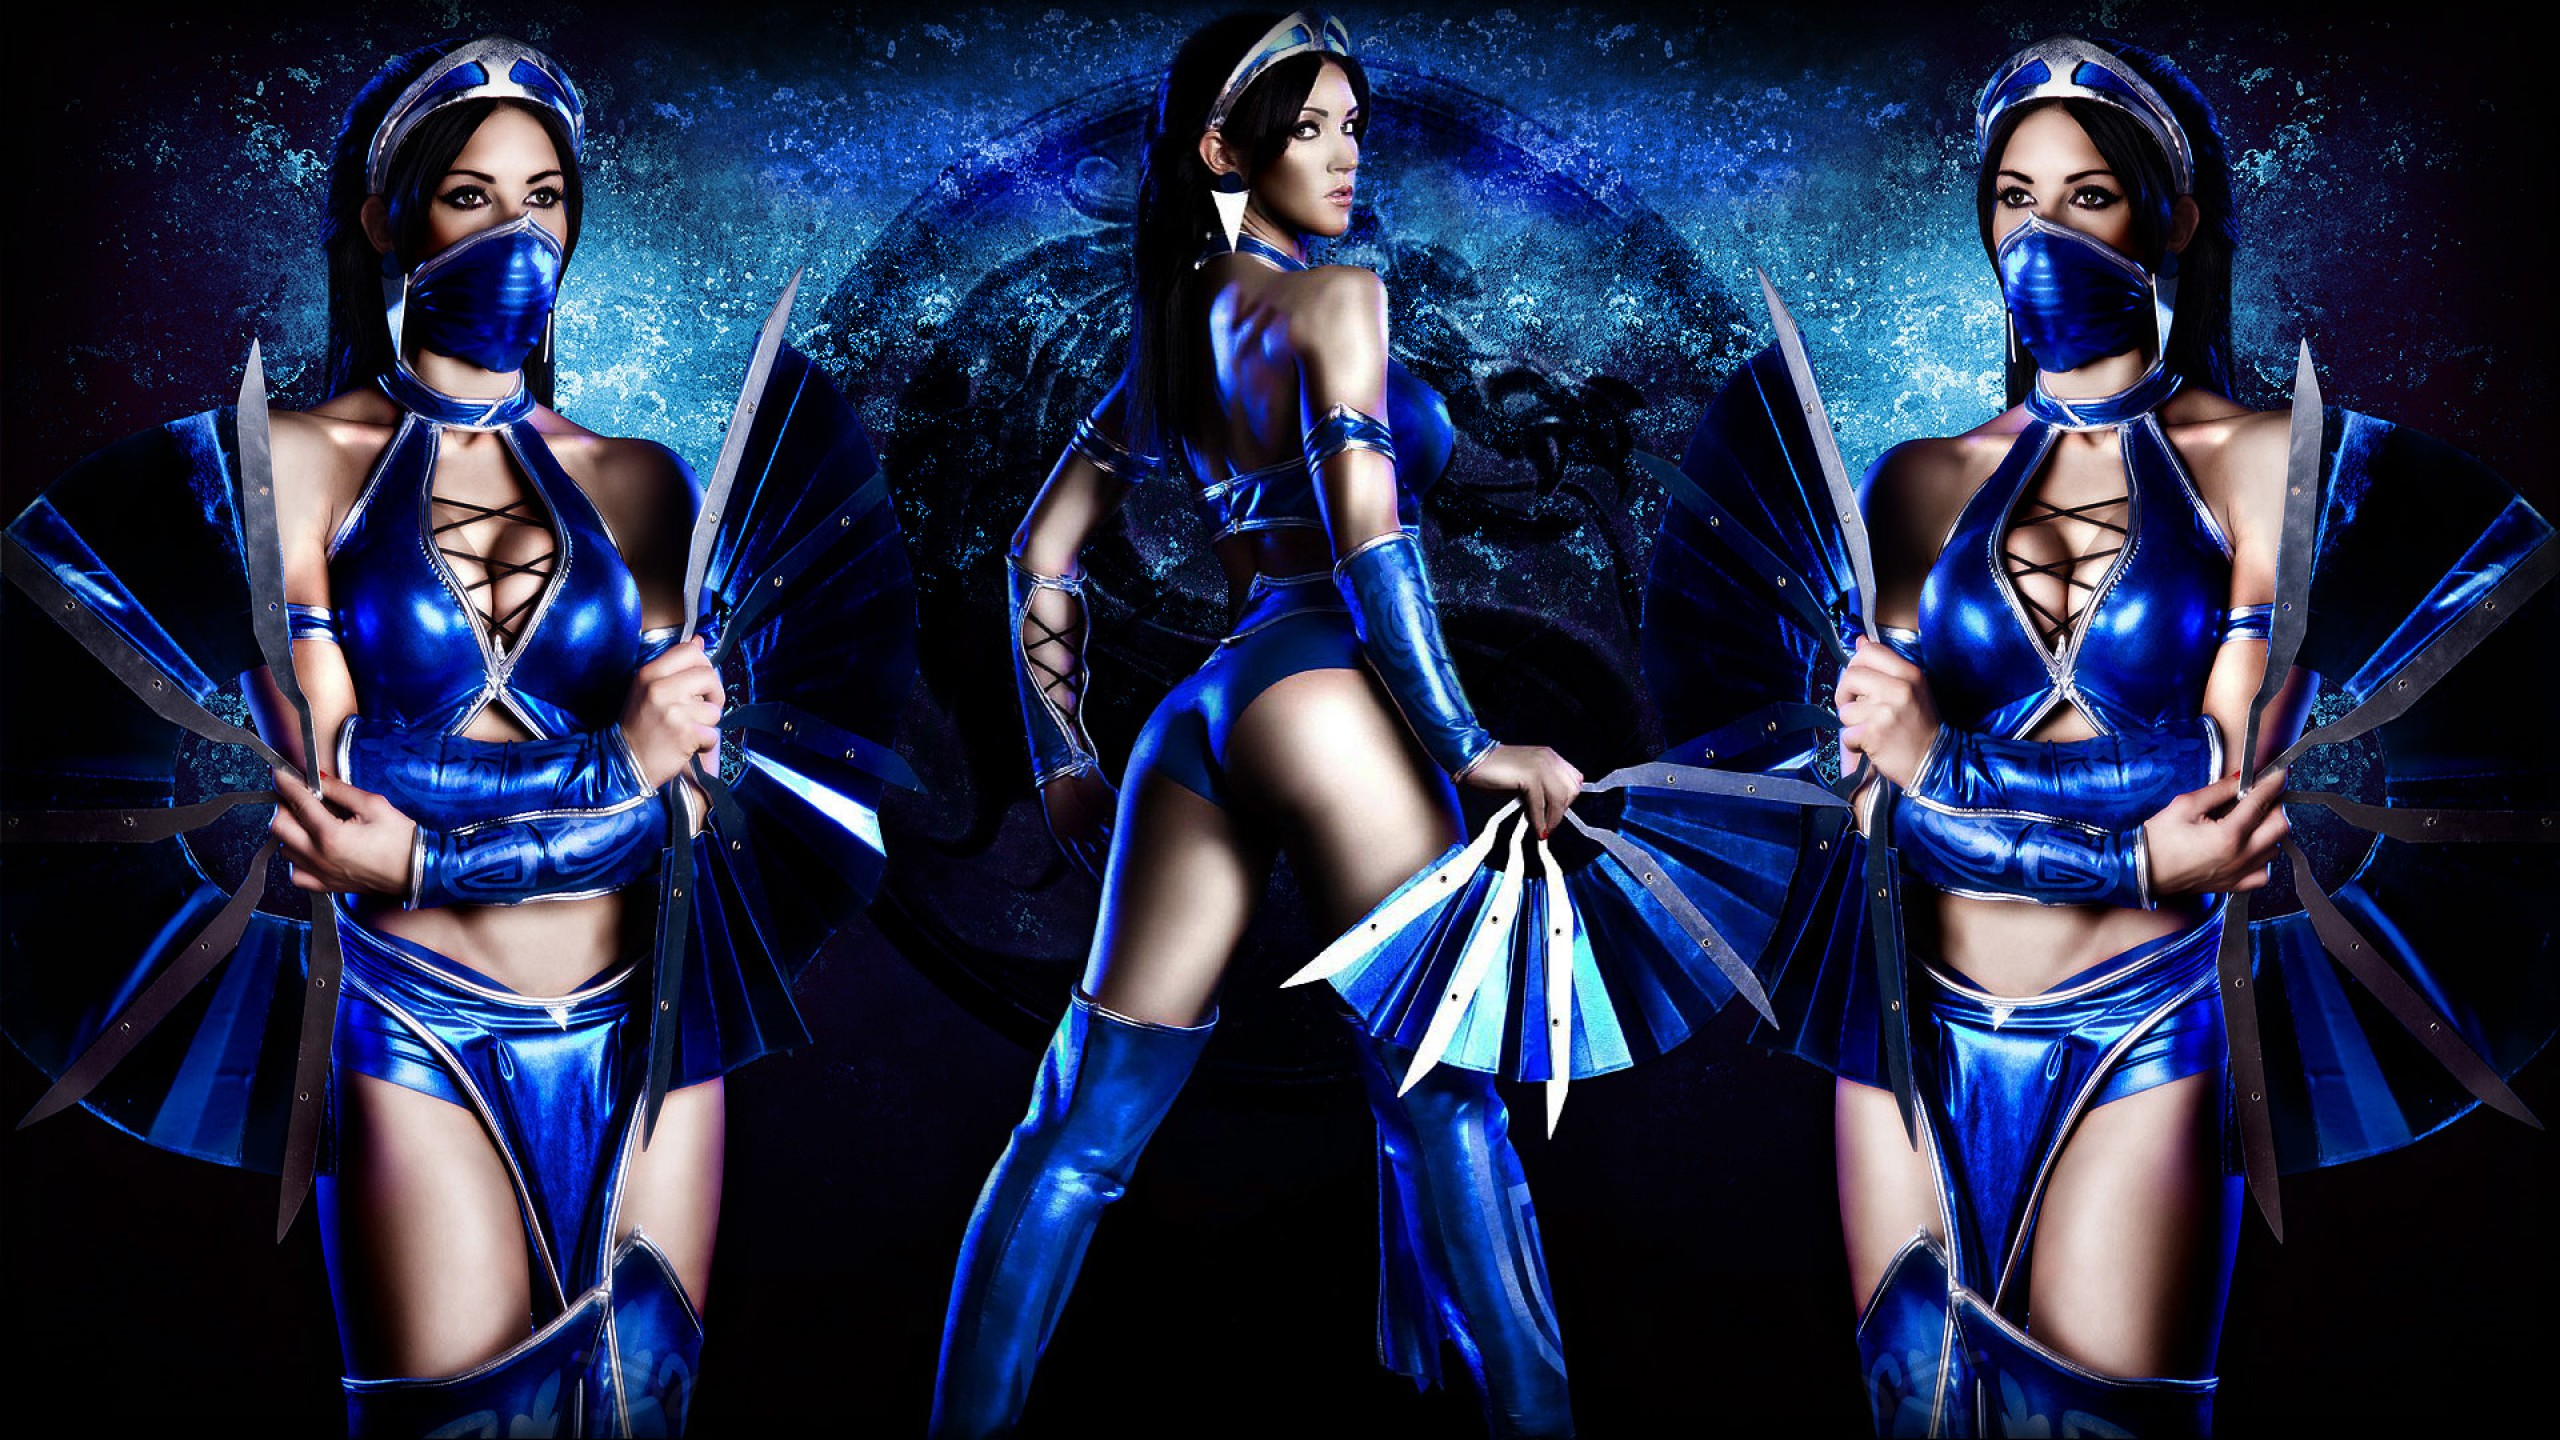 kitana costume  sc 1 st  Hollywood Jackets & Mortal Kombat Kitana Costume | Bold and Dazzling Assassin Style